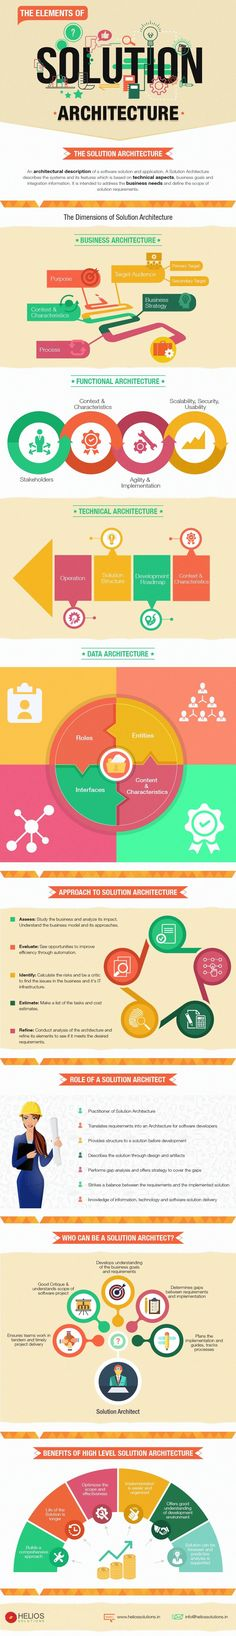 Understanding Solution Architecture [Infographic] By Helios  Read more at https://blog.heliossolutions.in/solution-architecture/understanding-solution-architecture-infographic-helios/